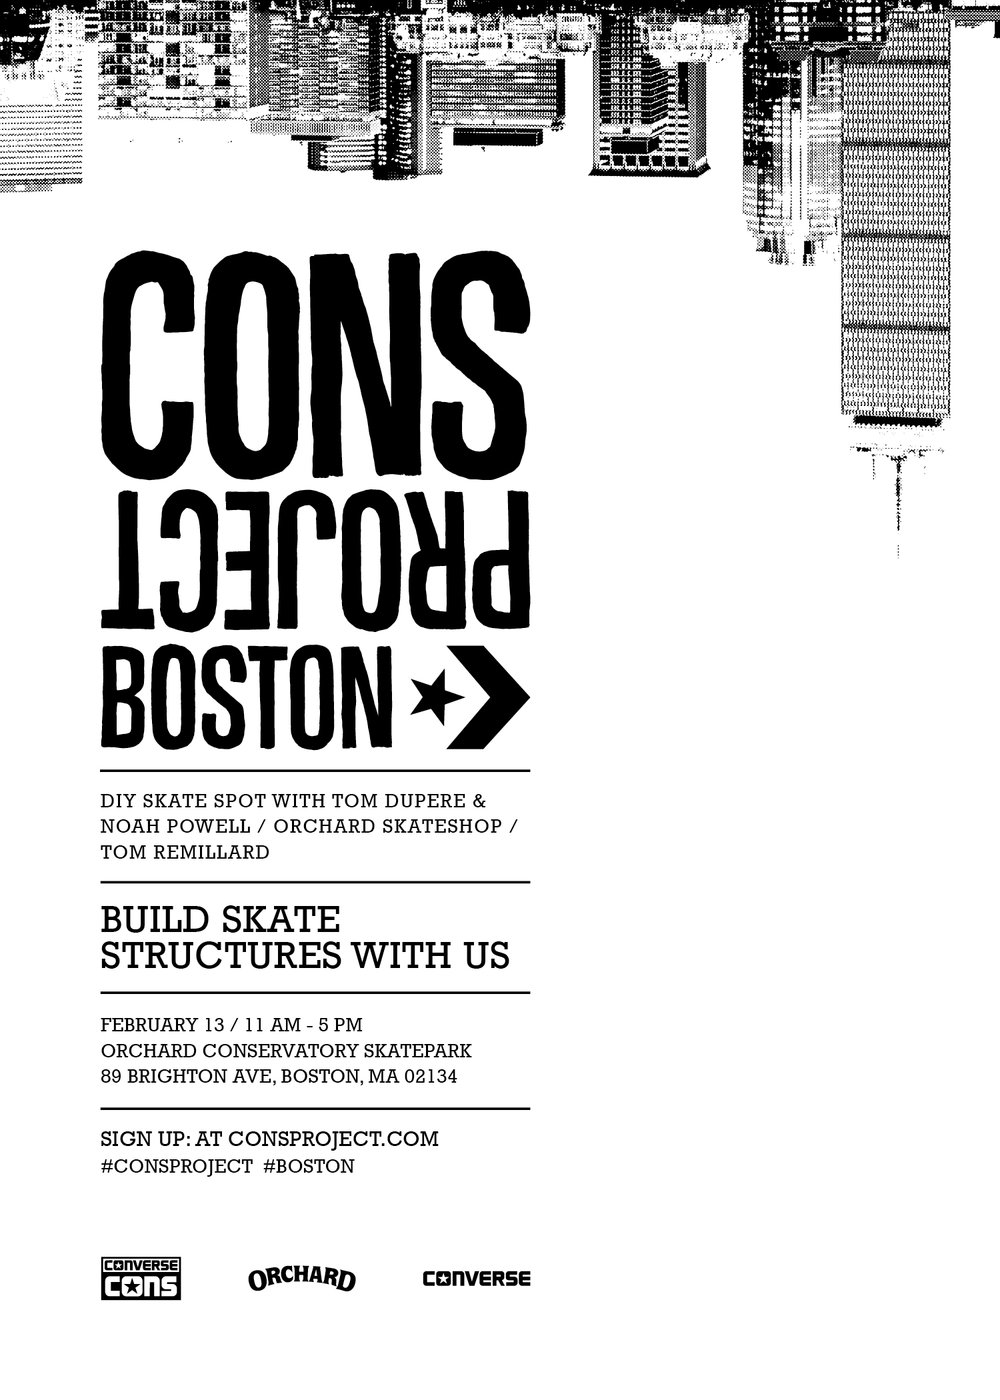 CONS Project Boston Invitation